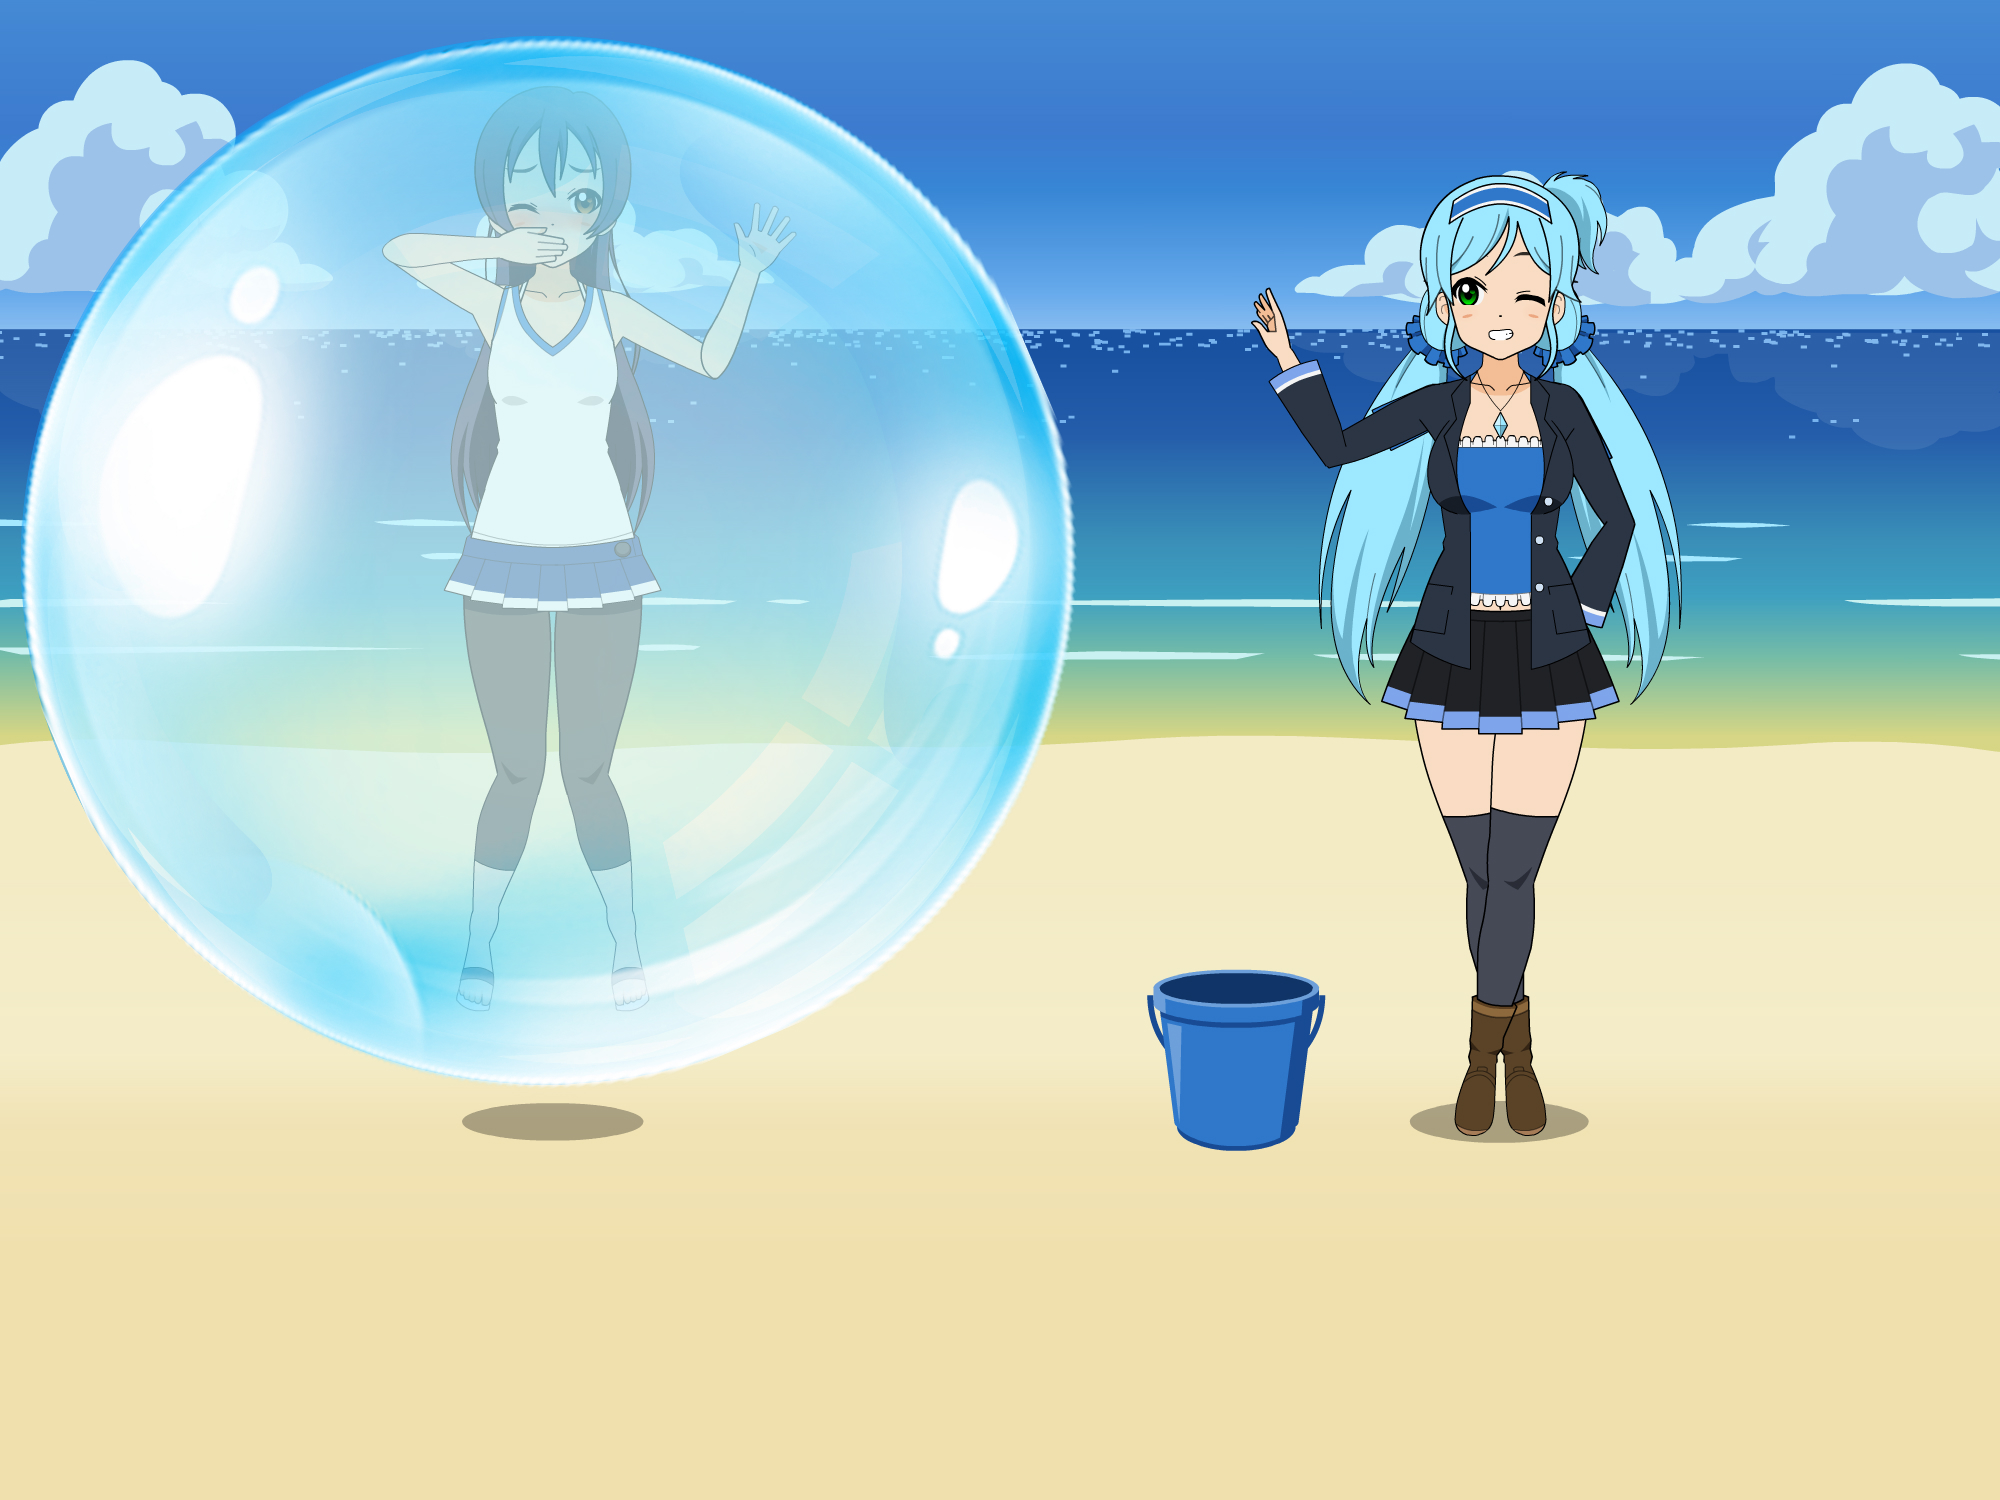 Inside water Bubble trapped by Elise by sunnyDg